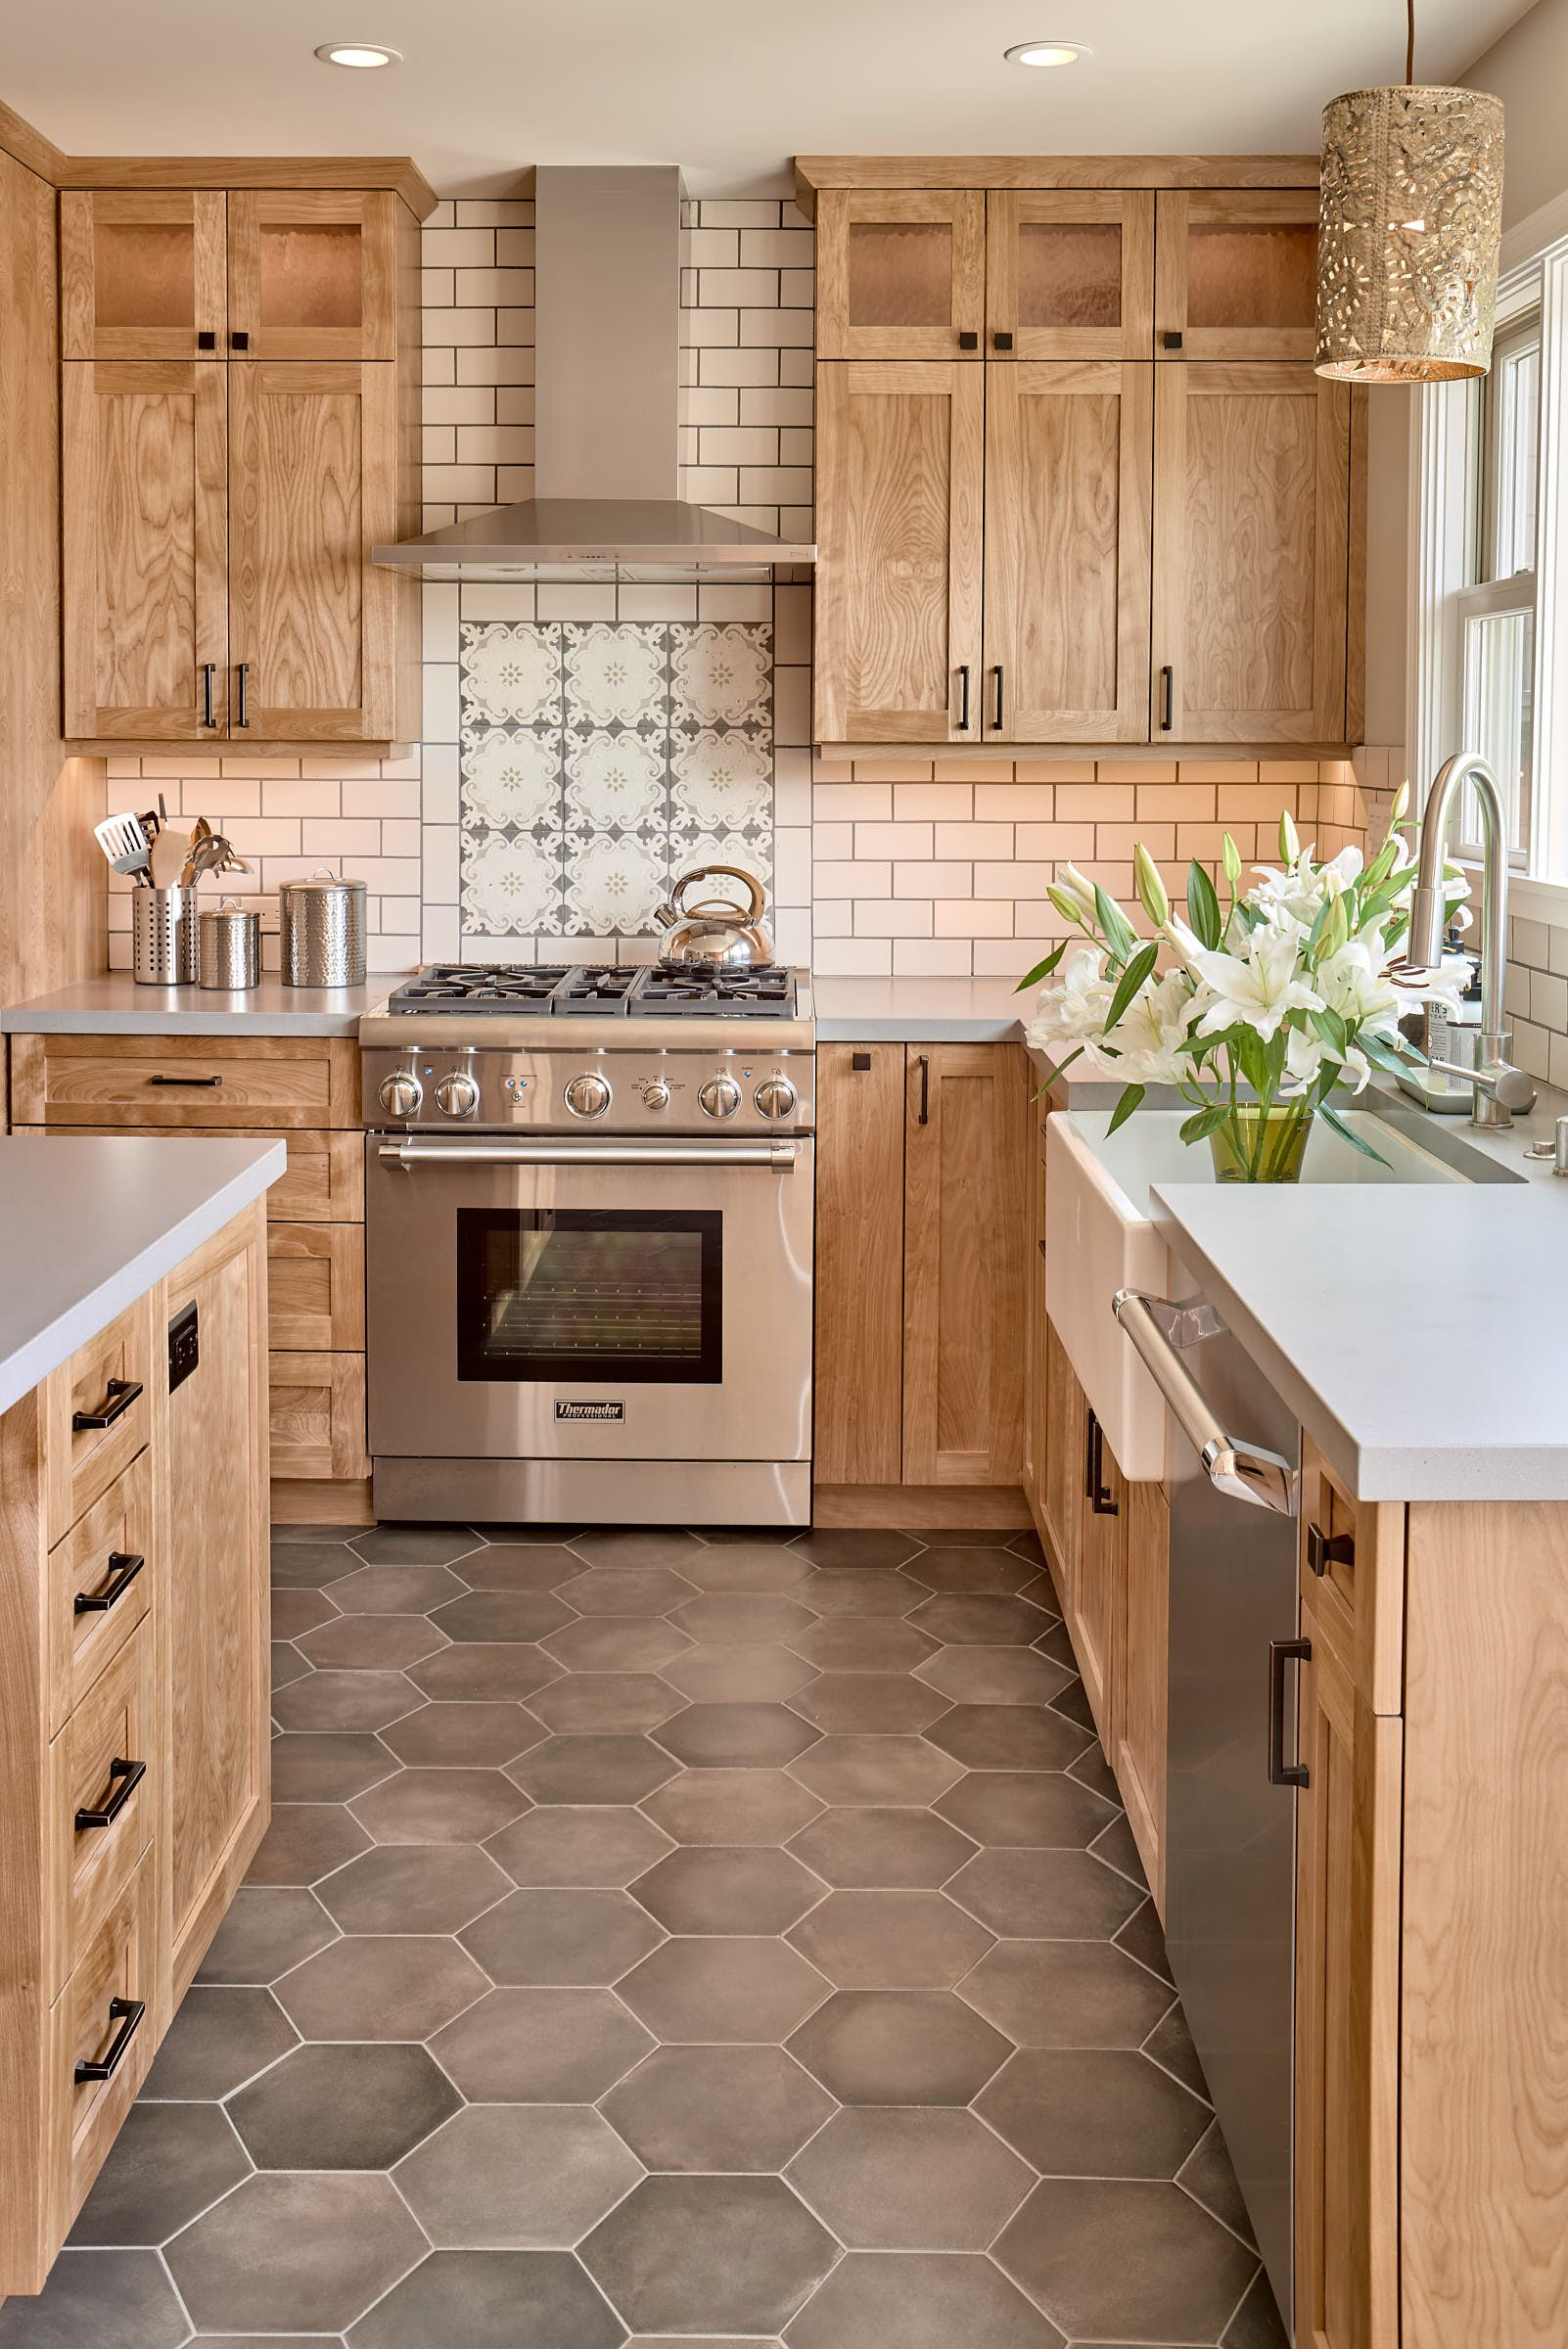 Kitchen Cabinet Remodel Ideas: Modern Craftsman Style Kitchen - Super Cute!